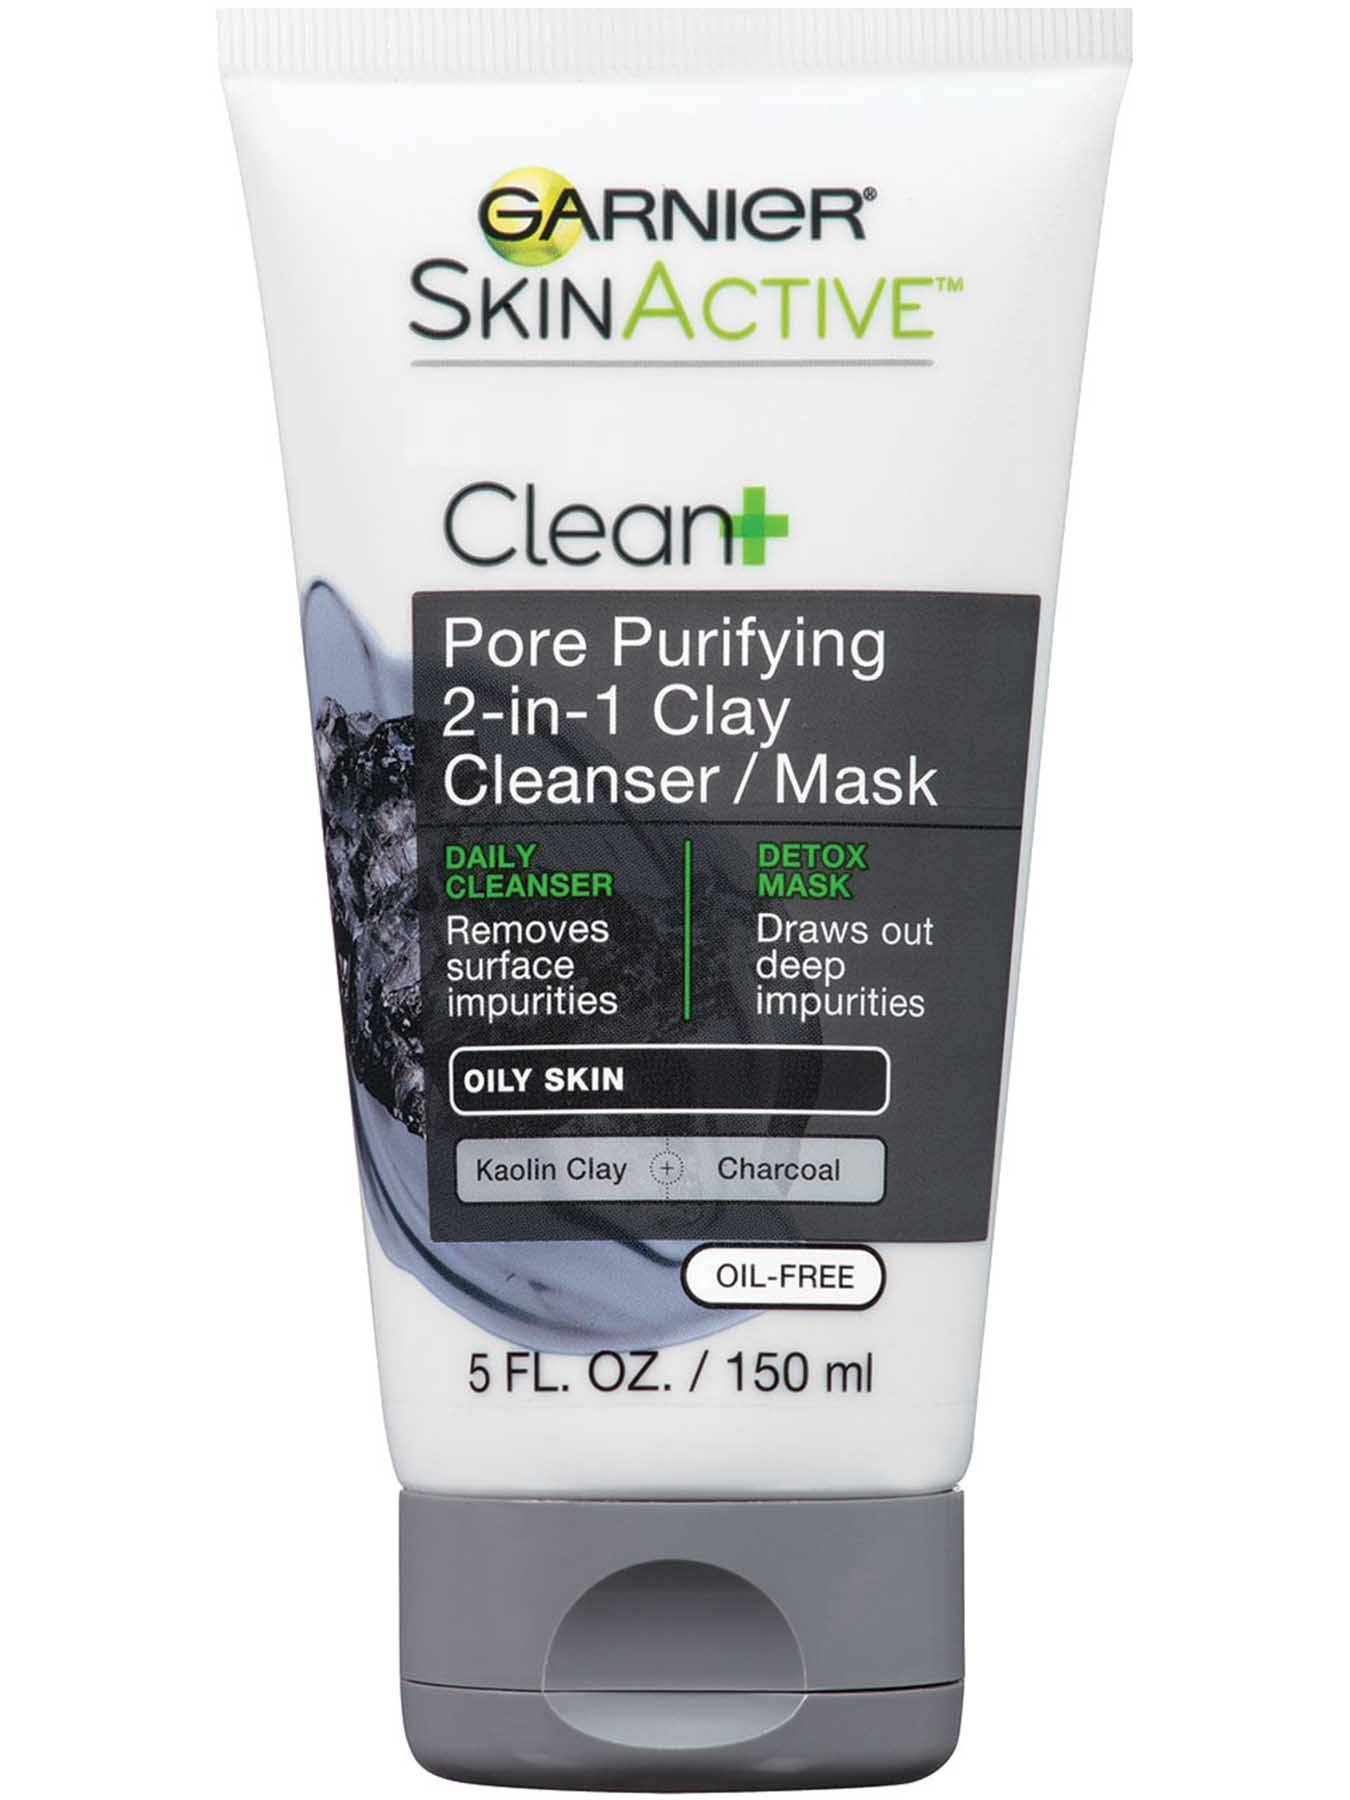 Clean+ Pore Purifying 2-in-1 Clay Cleanser/Mask